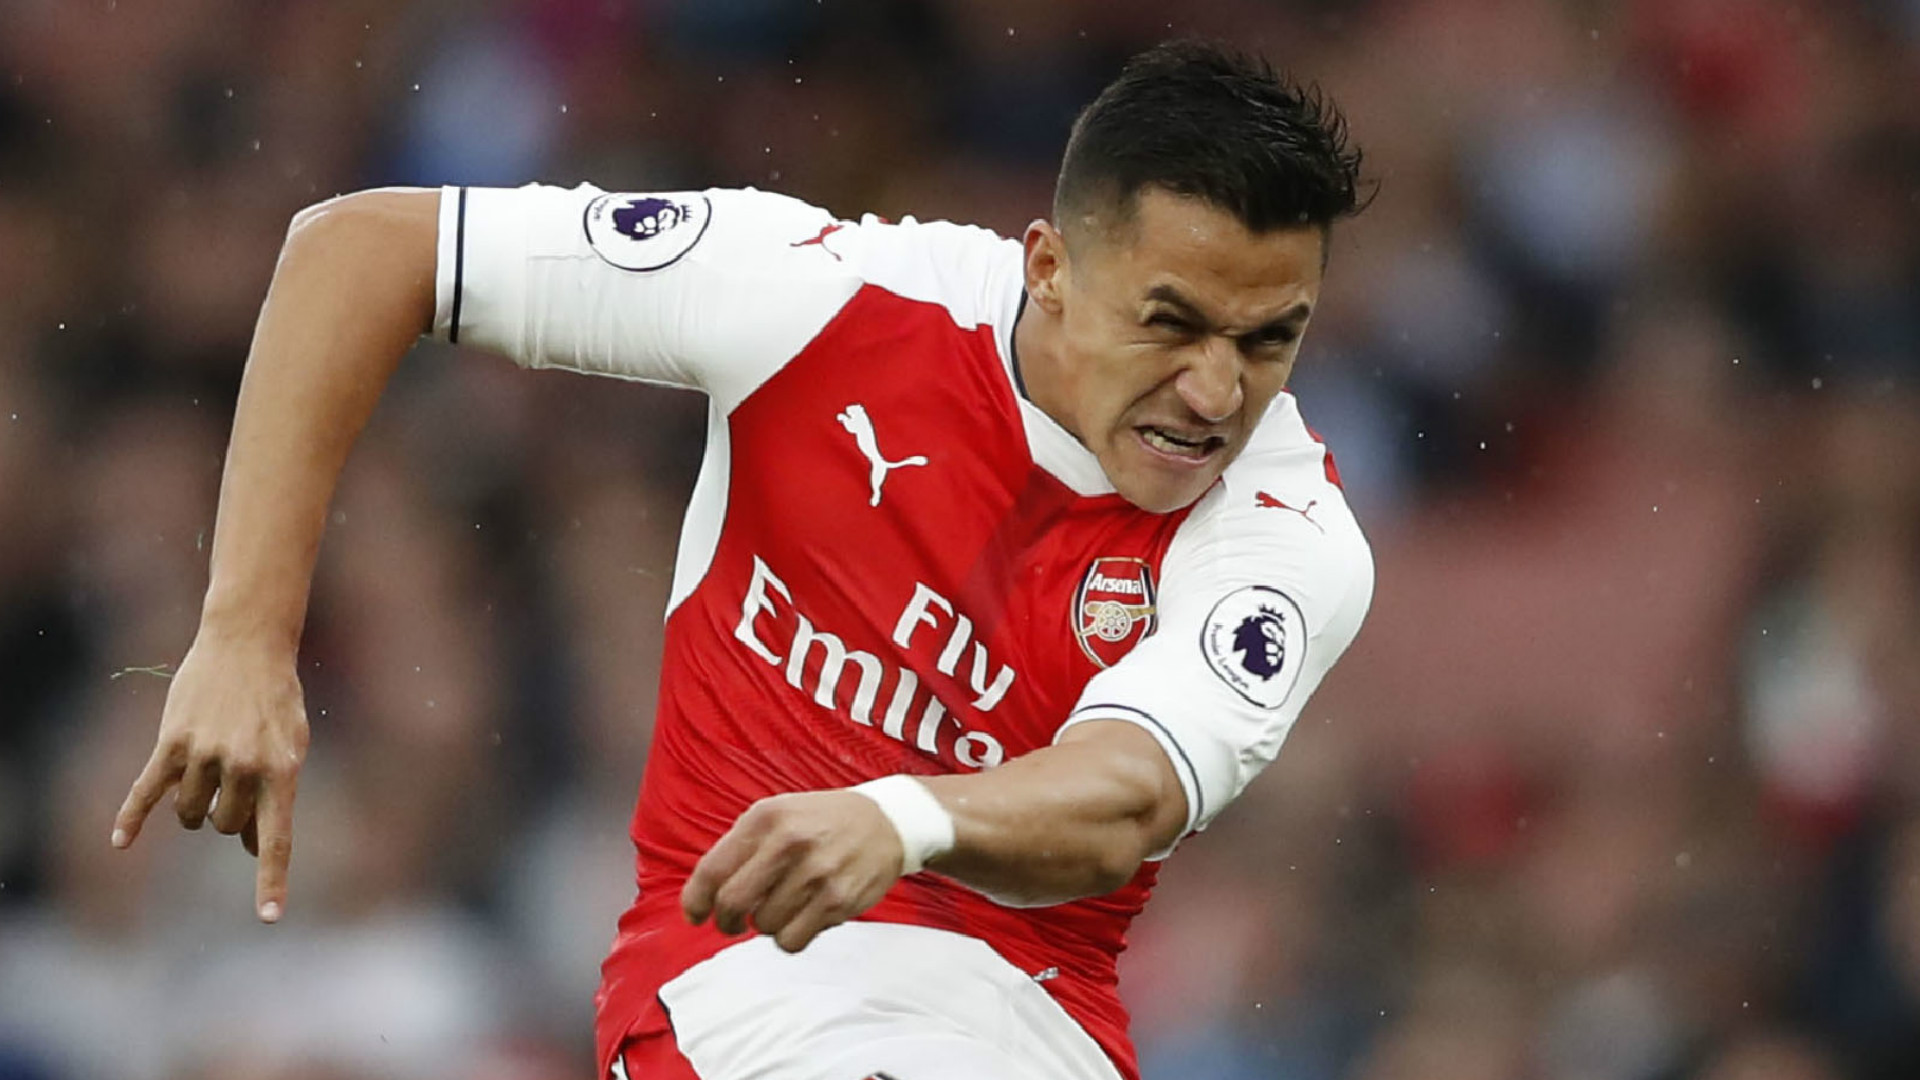 BAYERN STUNNED BY ALEXIS WAGE